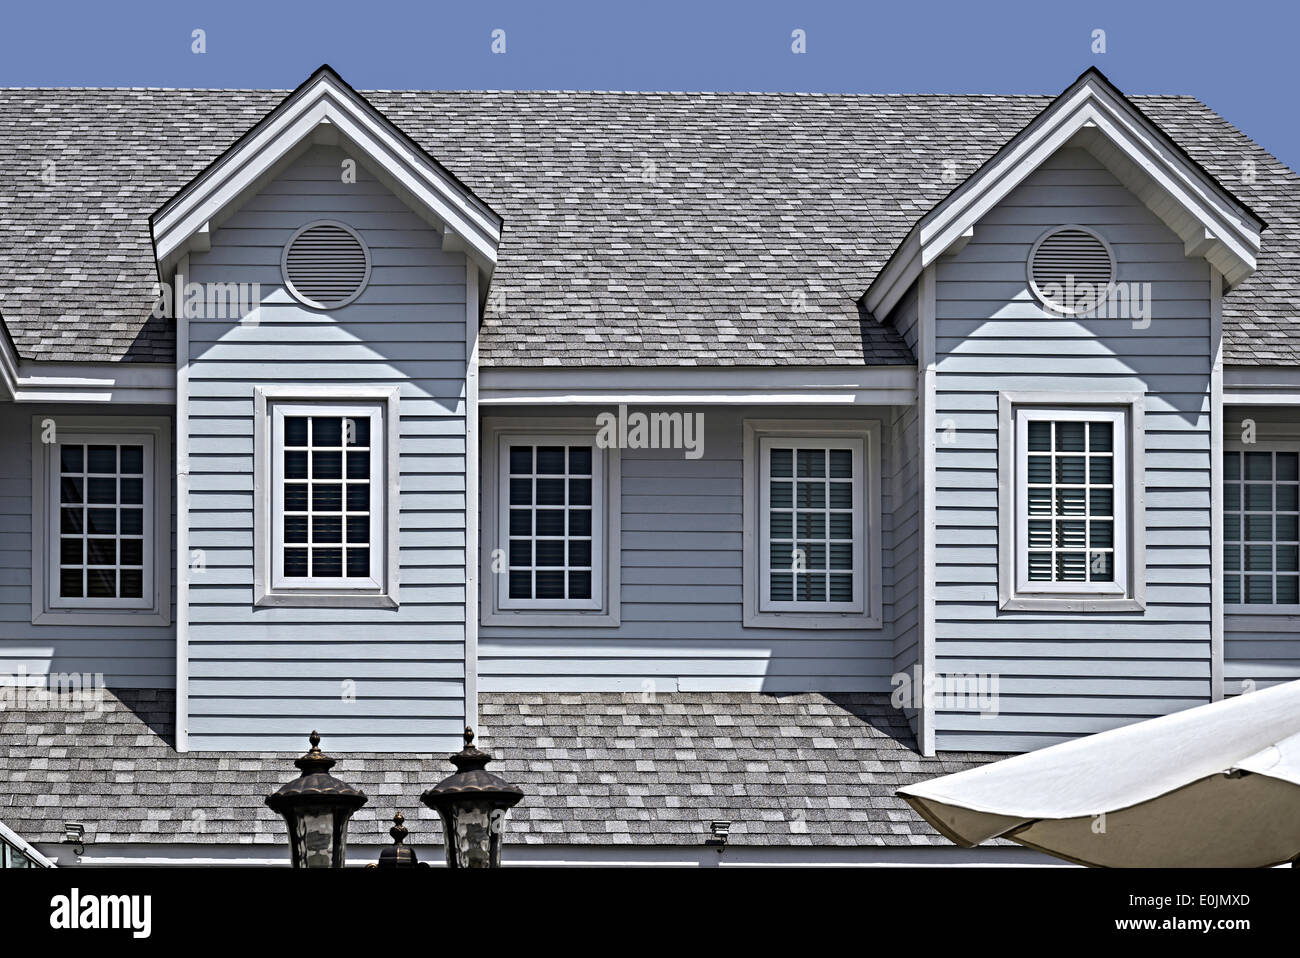 Large Dormer Window And Shingled Roof Construction With